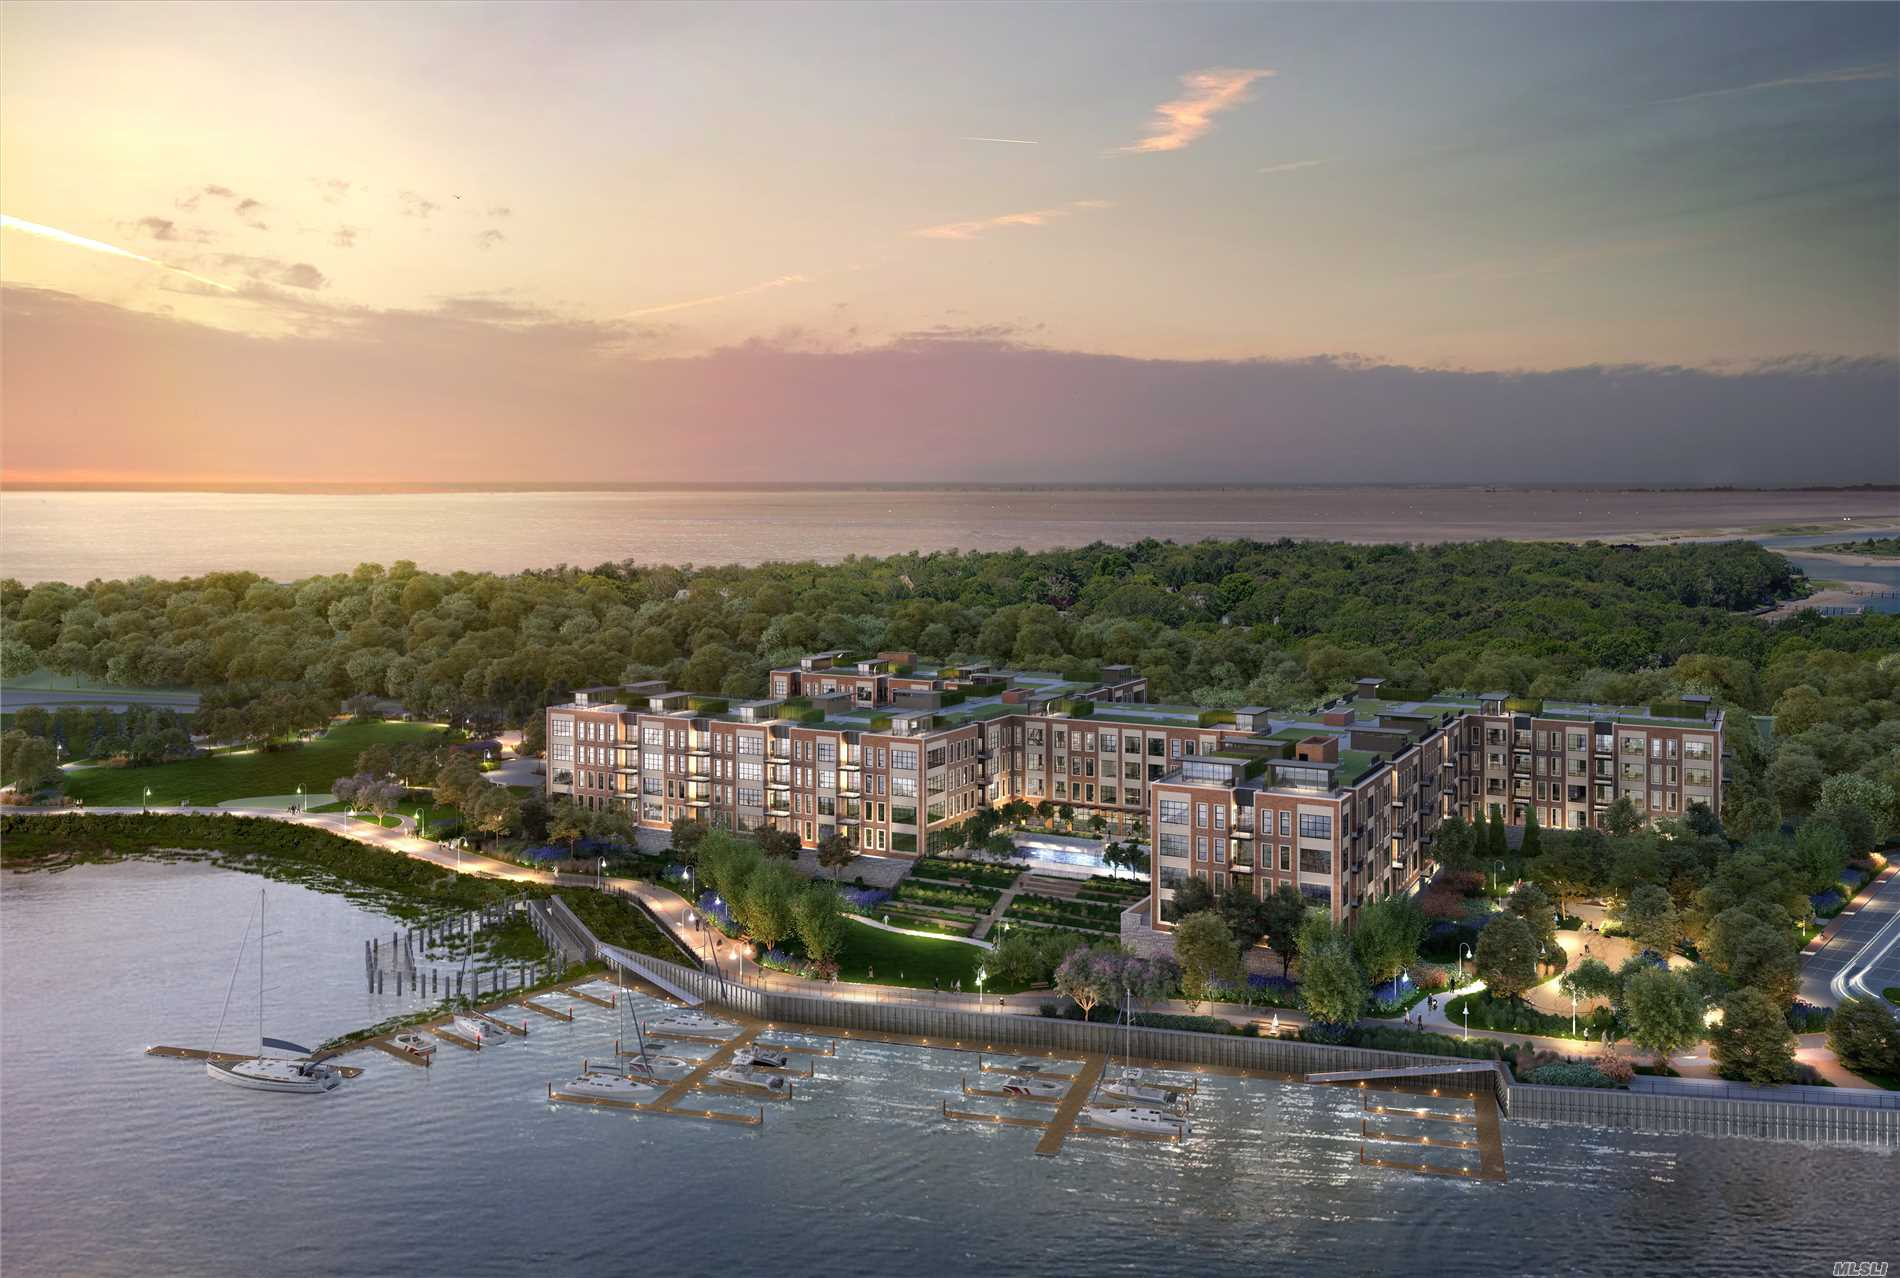 Property for sale at 100 Garvies Point Road # 1237, Glen Cove NY 11542, Glen Cove,  New York 11542